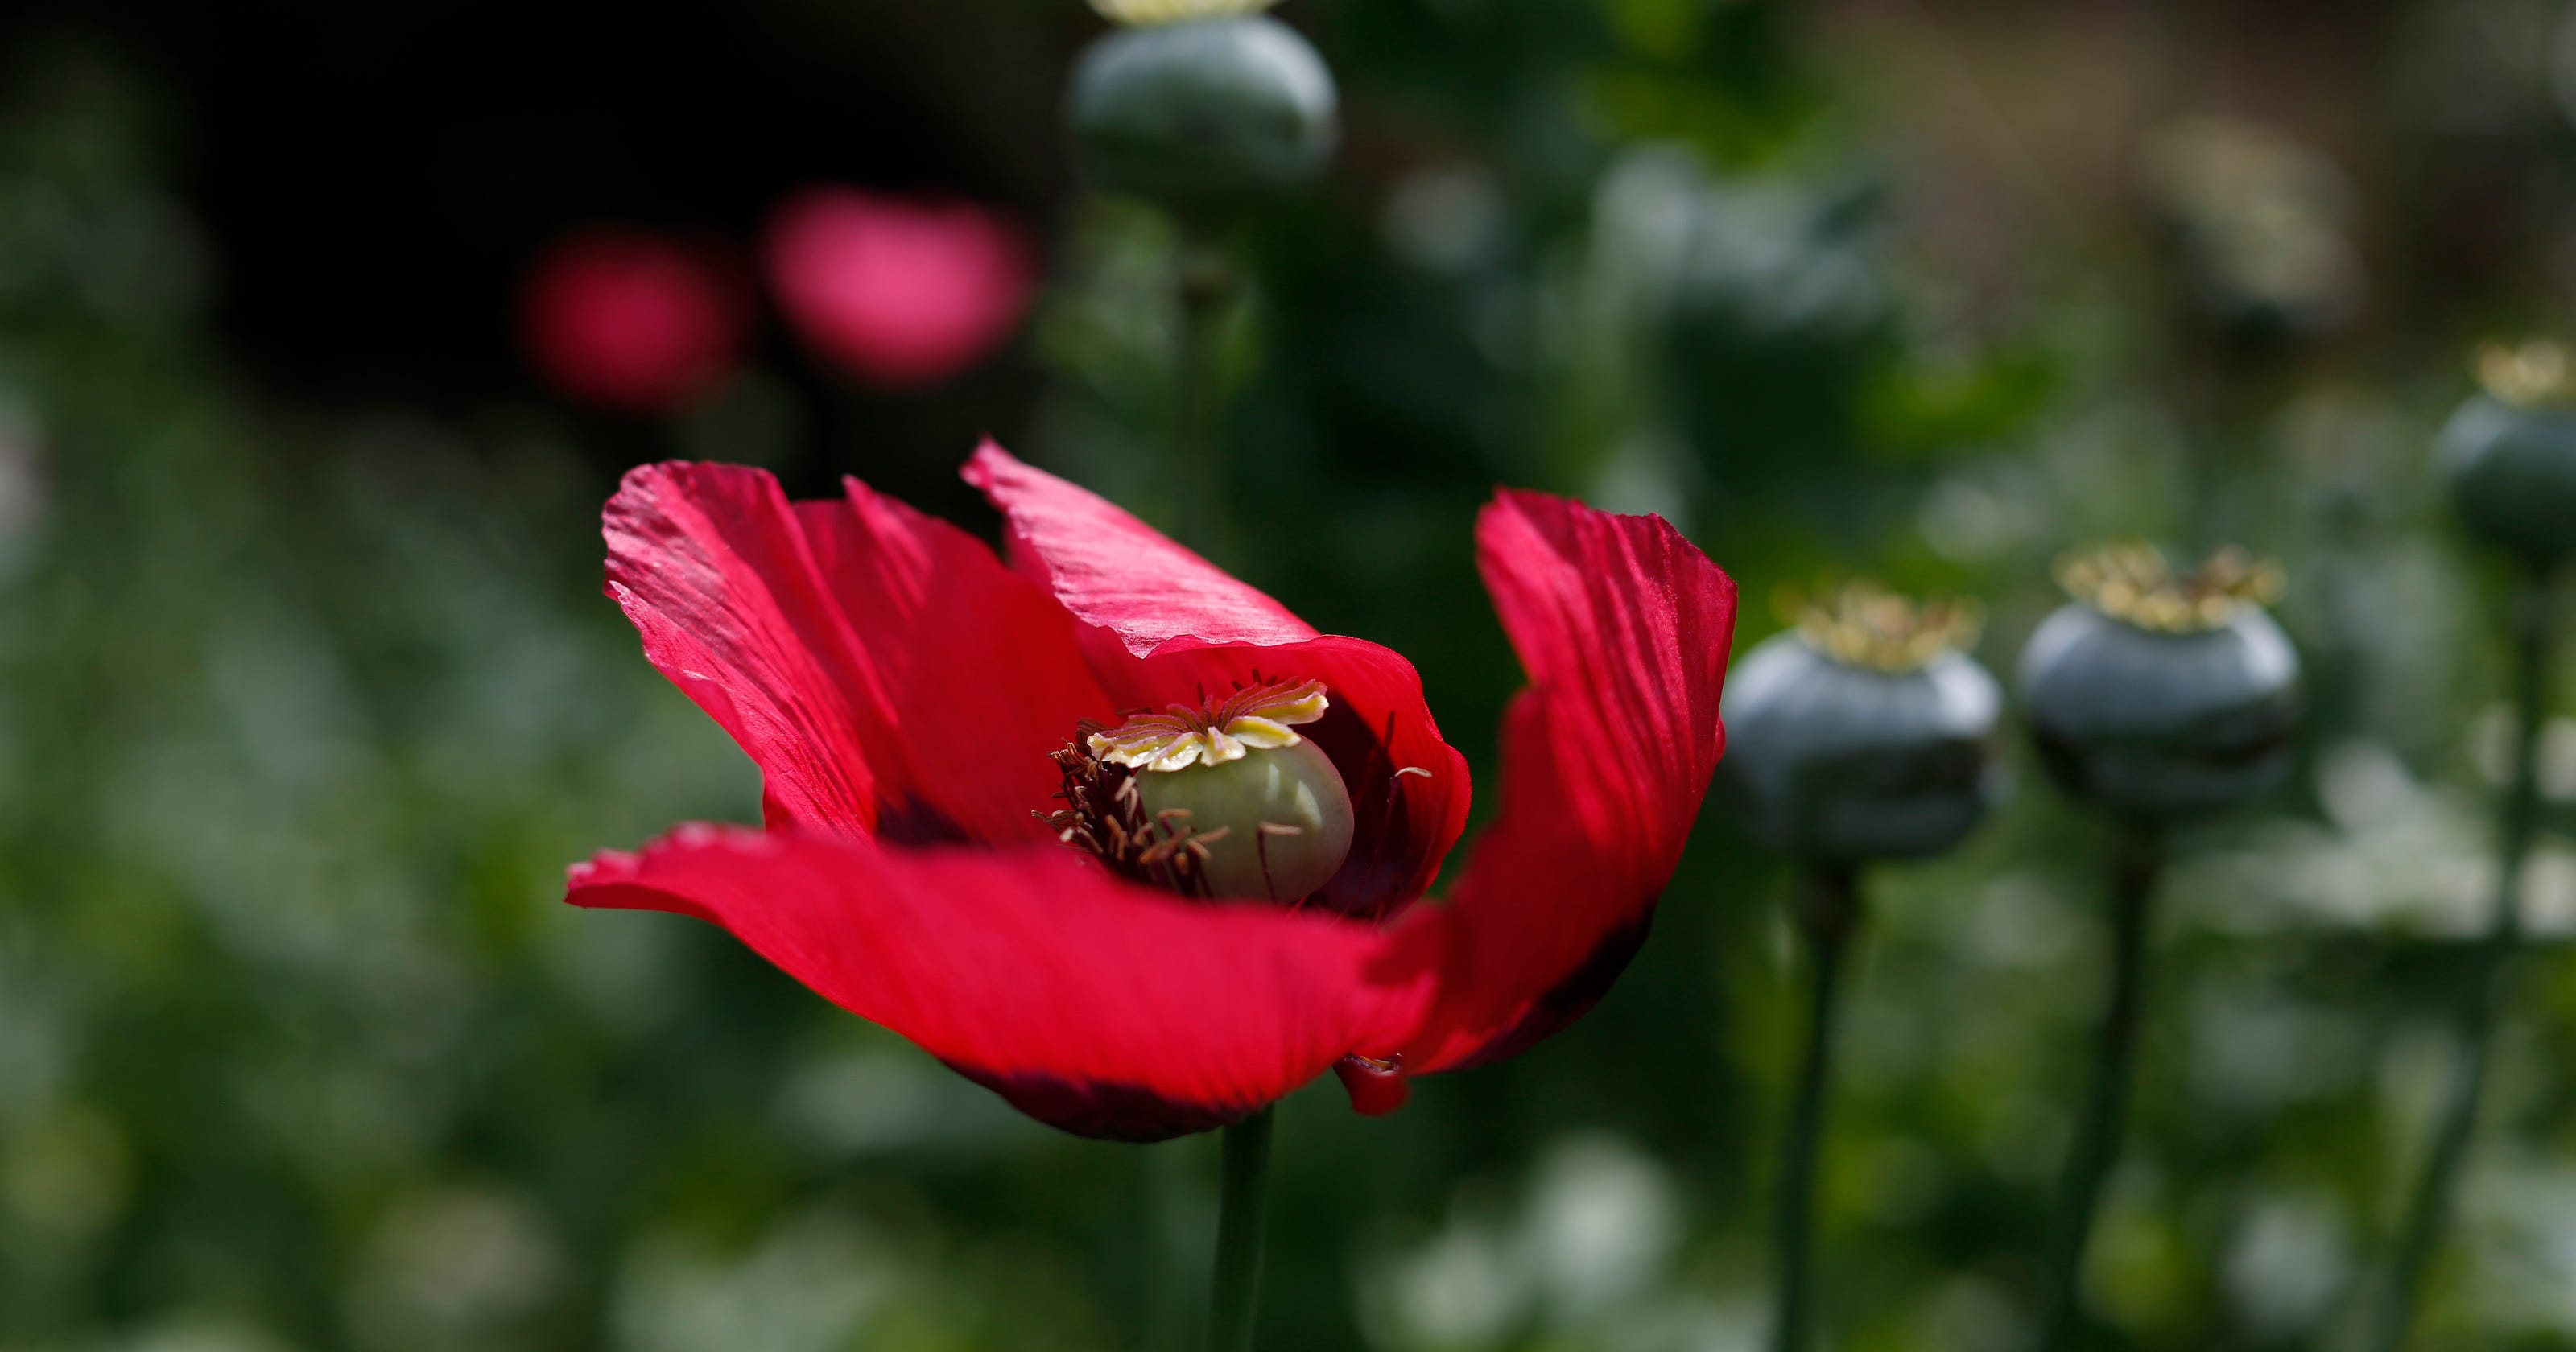 Mexican Opium Farmers Expand To Supply Us Heroin Boom